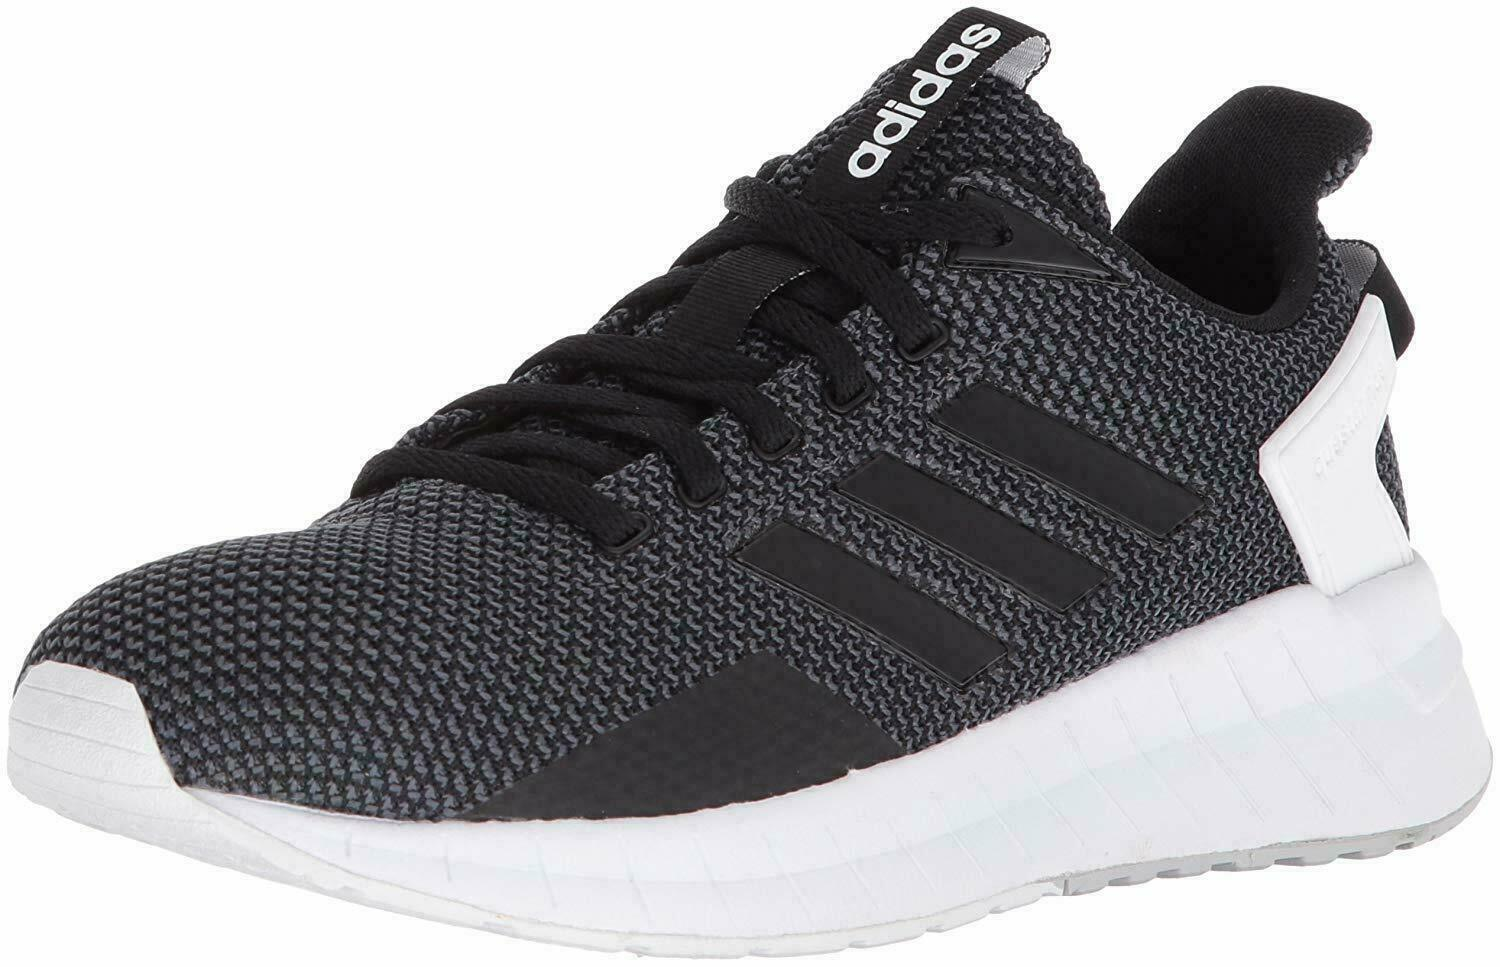 ADIDAS QUESTAR RIDE LOW SNEAKERS WOMEN SHOES CARBON BLACK GREY DB1308 SZ 7.5 NEW